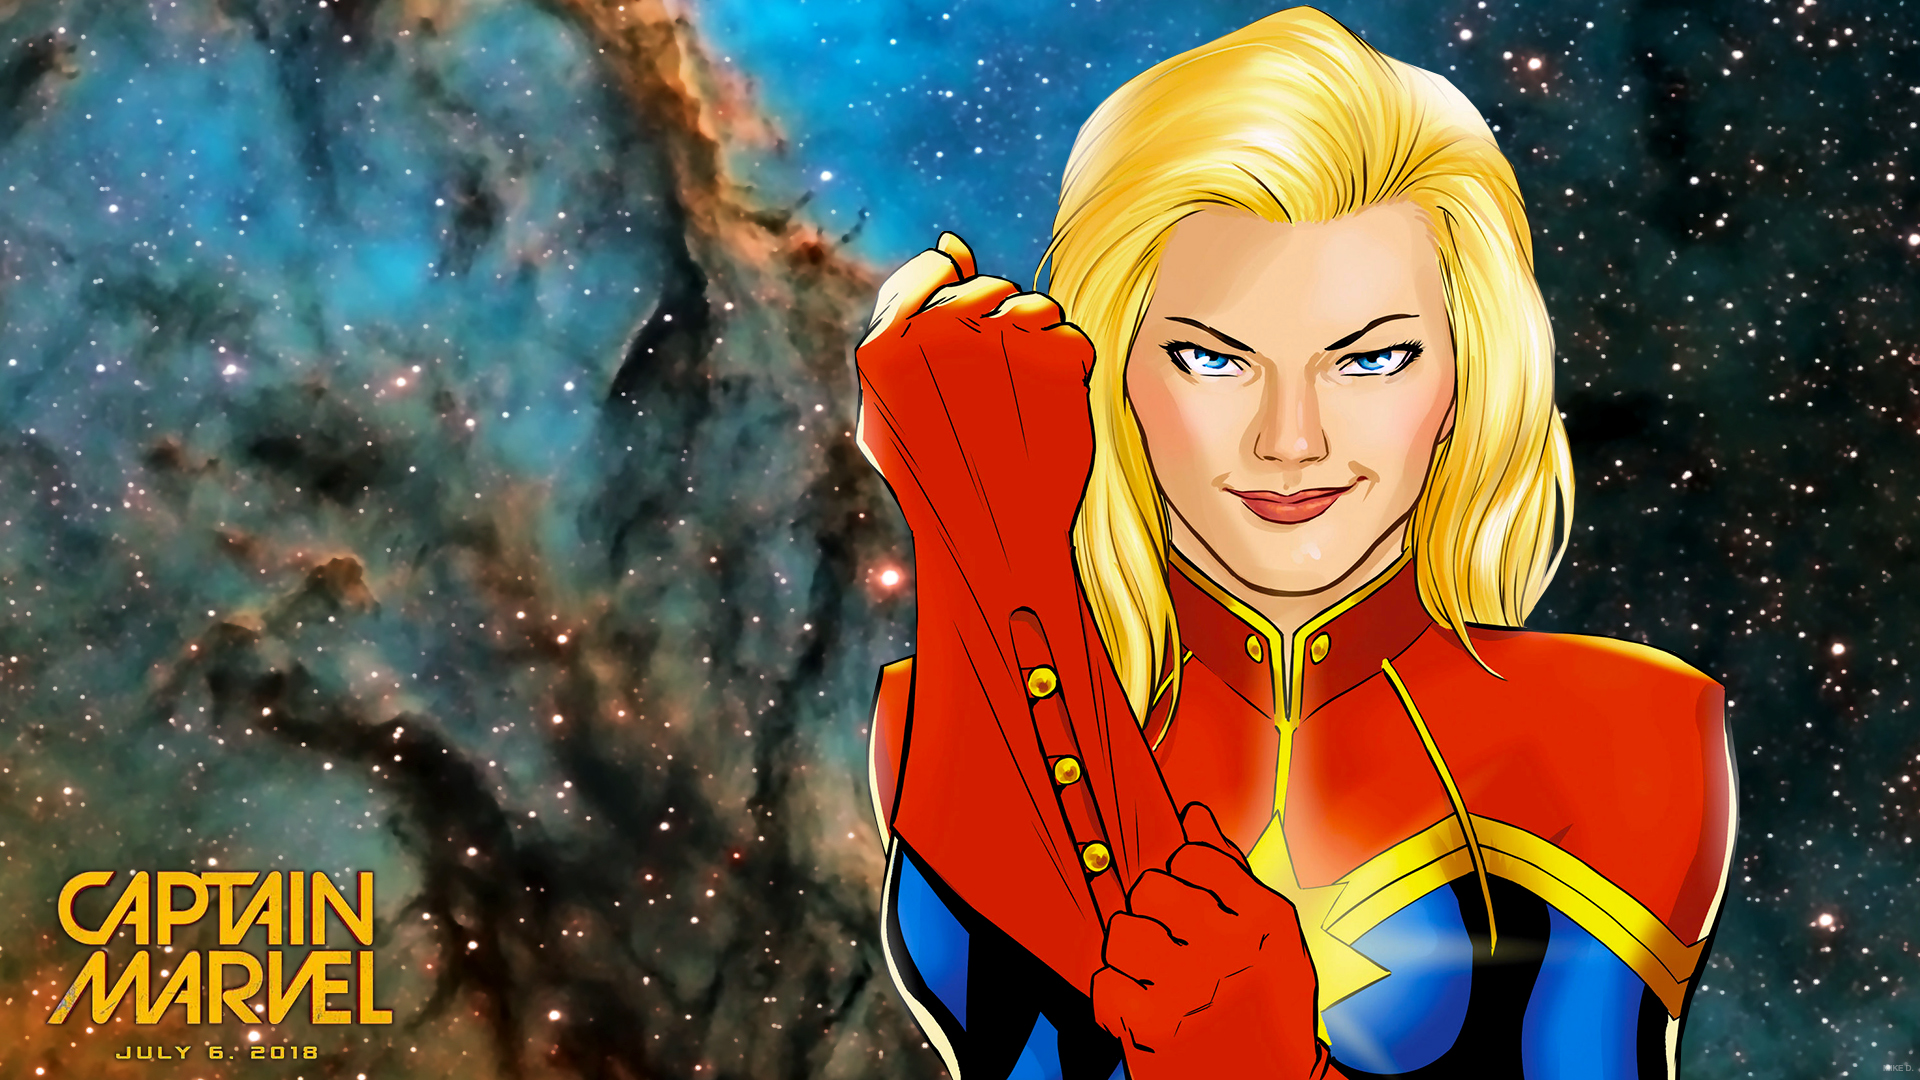 Captain Marvel is a 2019 superhero film based on the Marvel Comics superheroine of the same name It is the twentyfirst installment in the Marvel Cinematic Universe